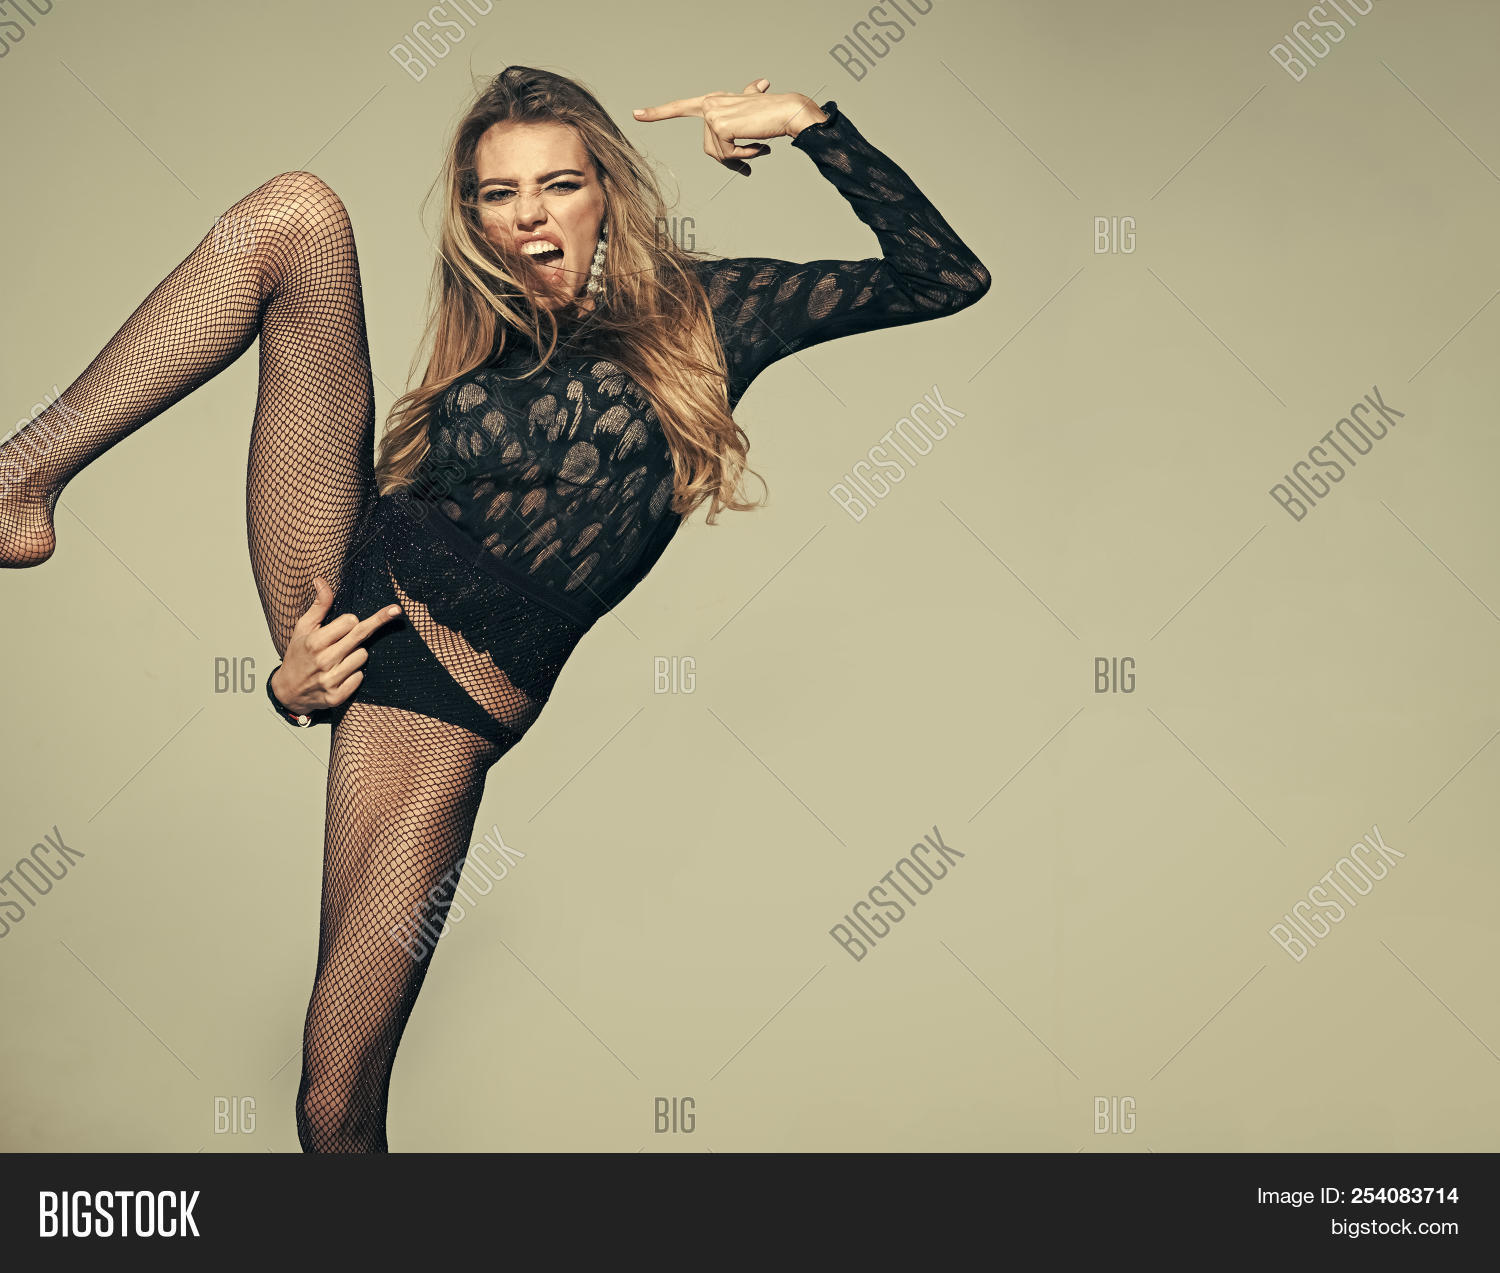 Fucking Hot Sexy Pic sexy woman shows fuck image & photo (free trial) | bigstock